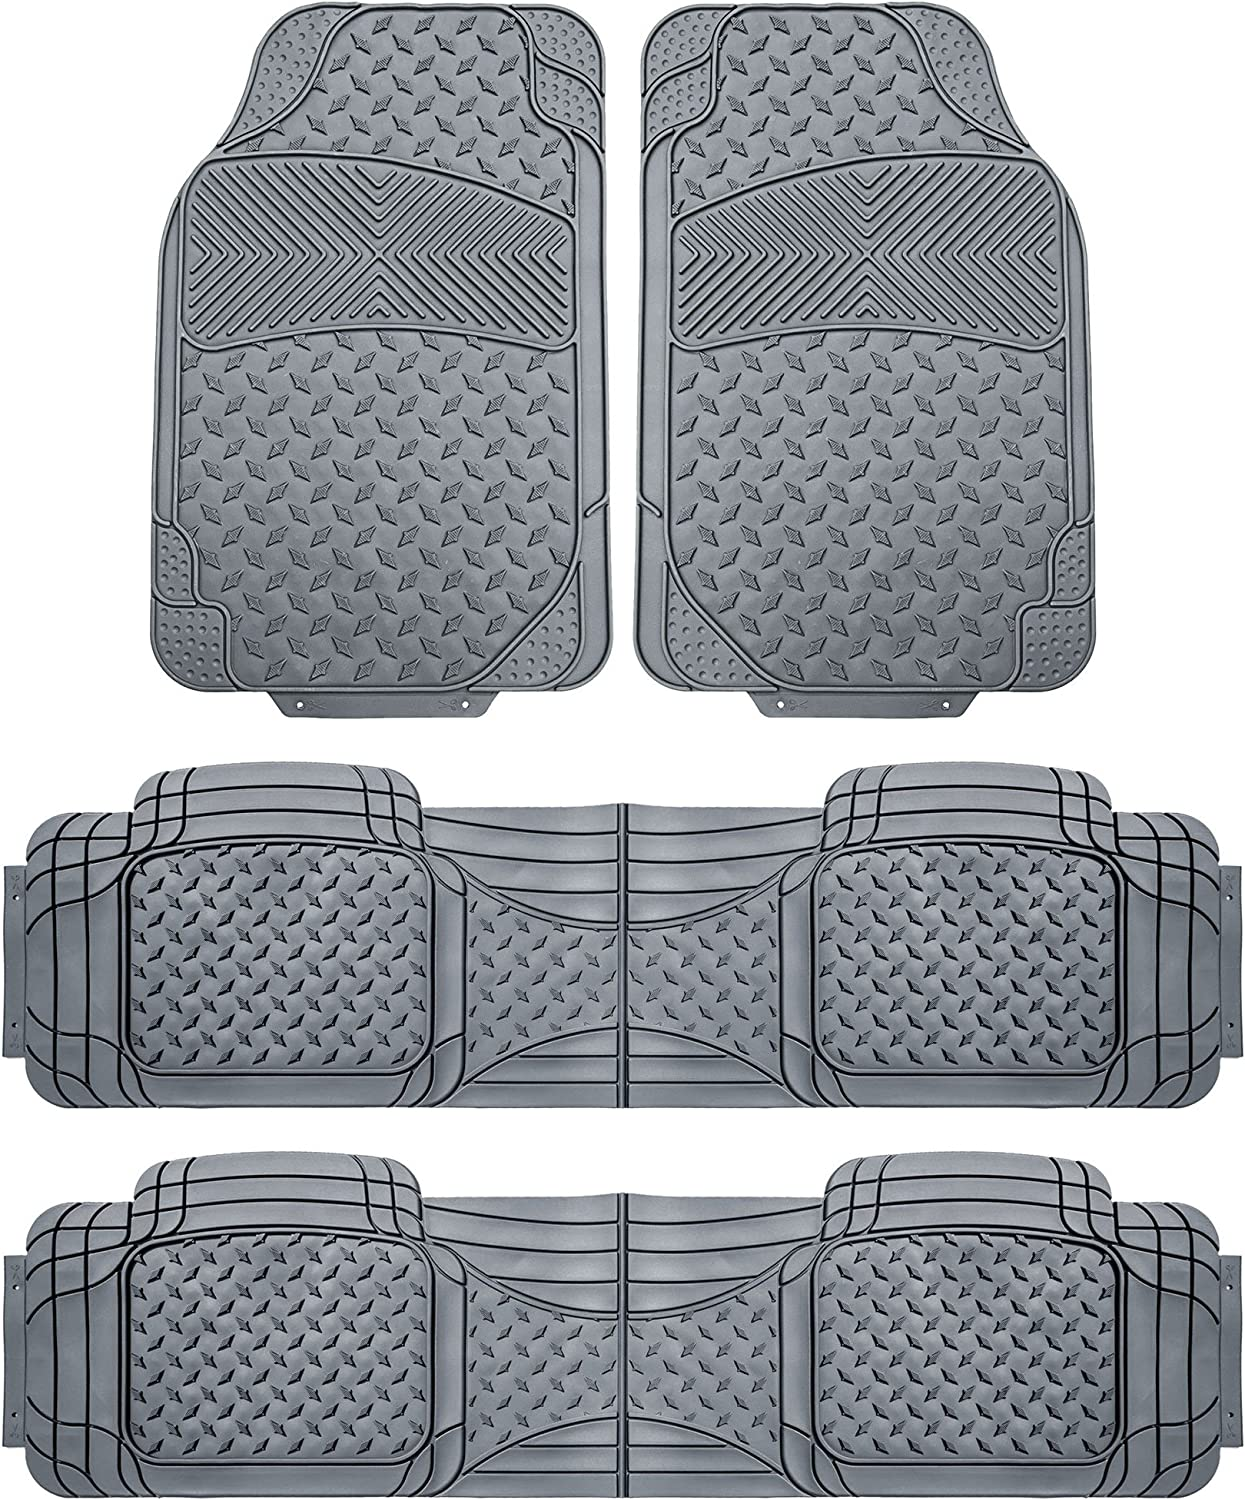 FH Group F11307 Semi-Custom Trimmable Vinyl Floor MatsF Three Row Set, Gray Color- Universal Fit for Cars Trucks and SUVs